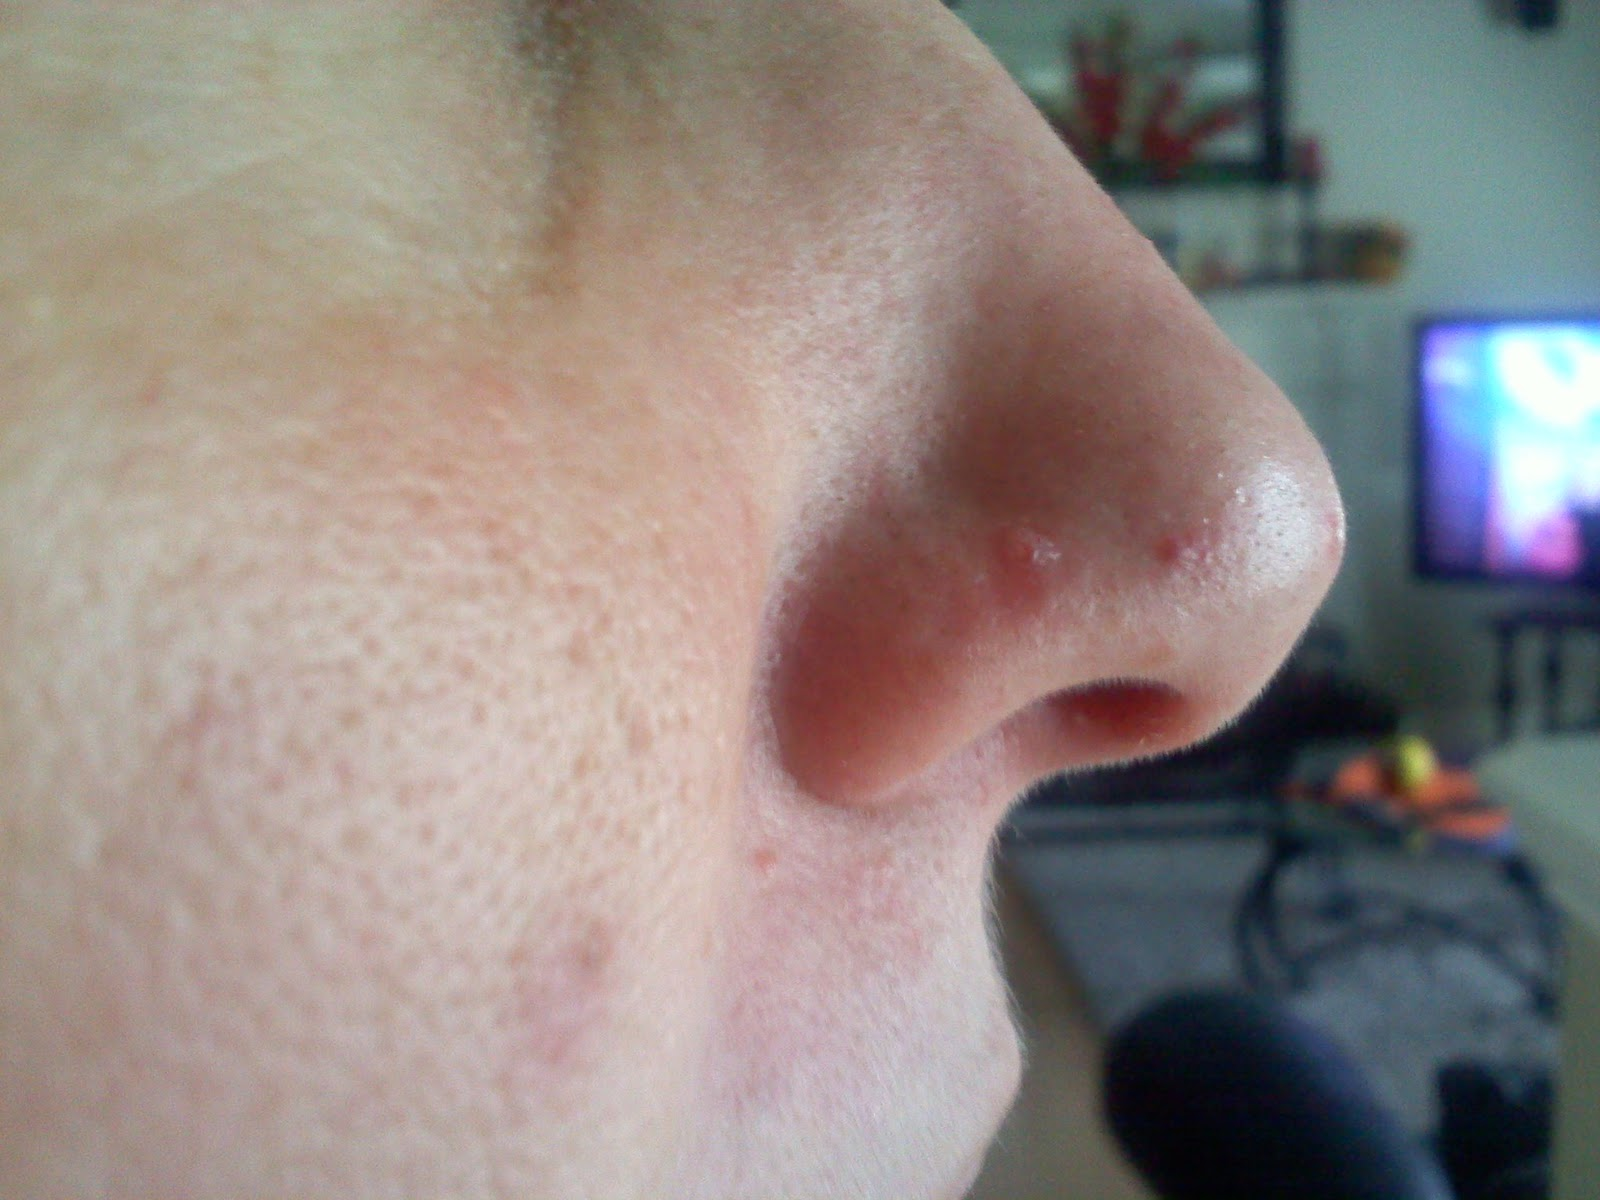 how to get rid of bump on nose